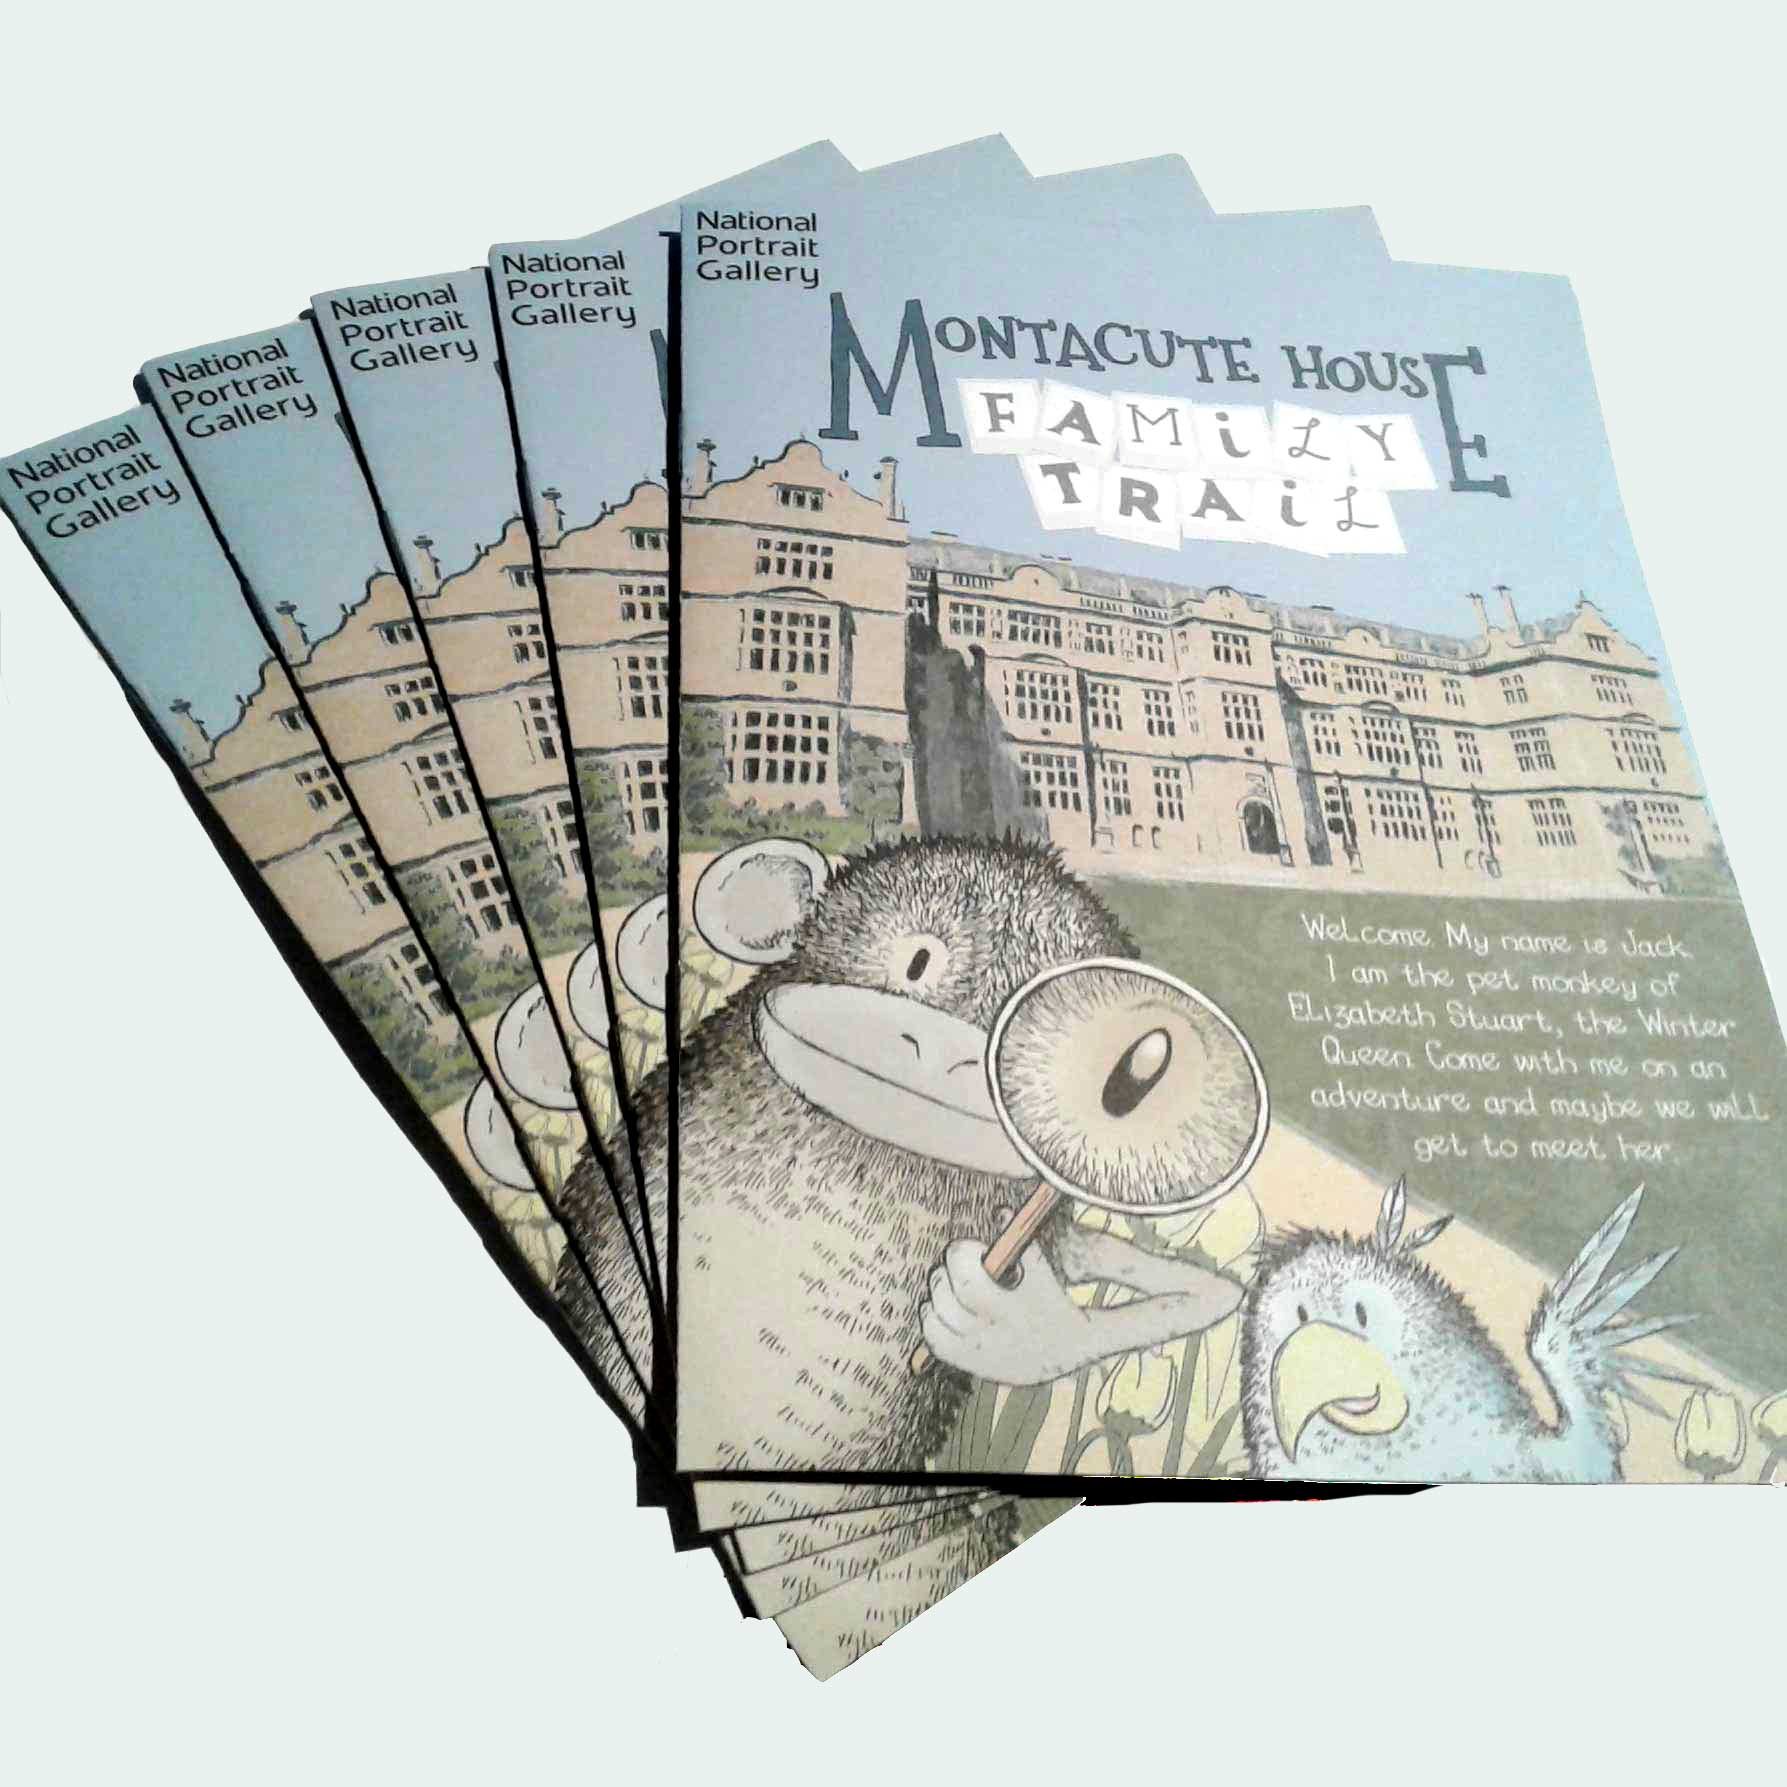 sally barnett illustration frome bath bristol montacute house family trail booklet front cover with monkey and parrot and house national portrait gallery national trust